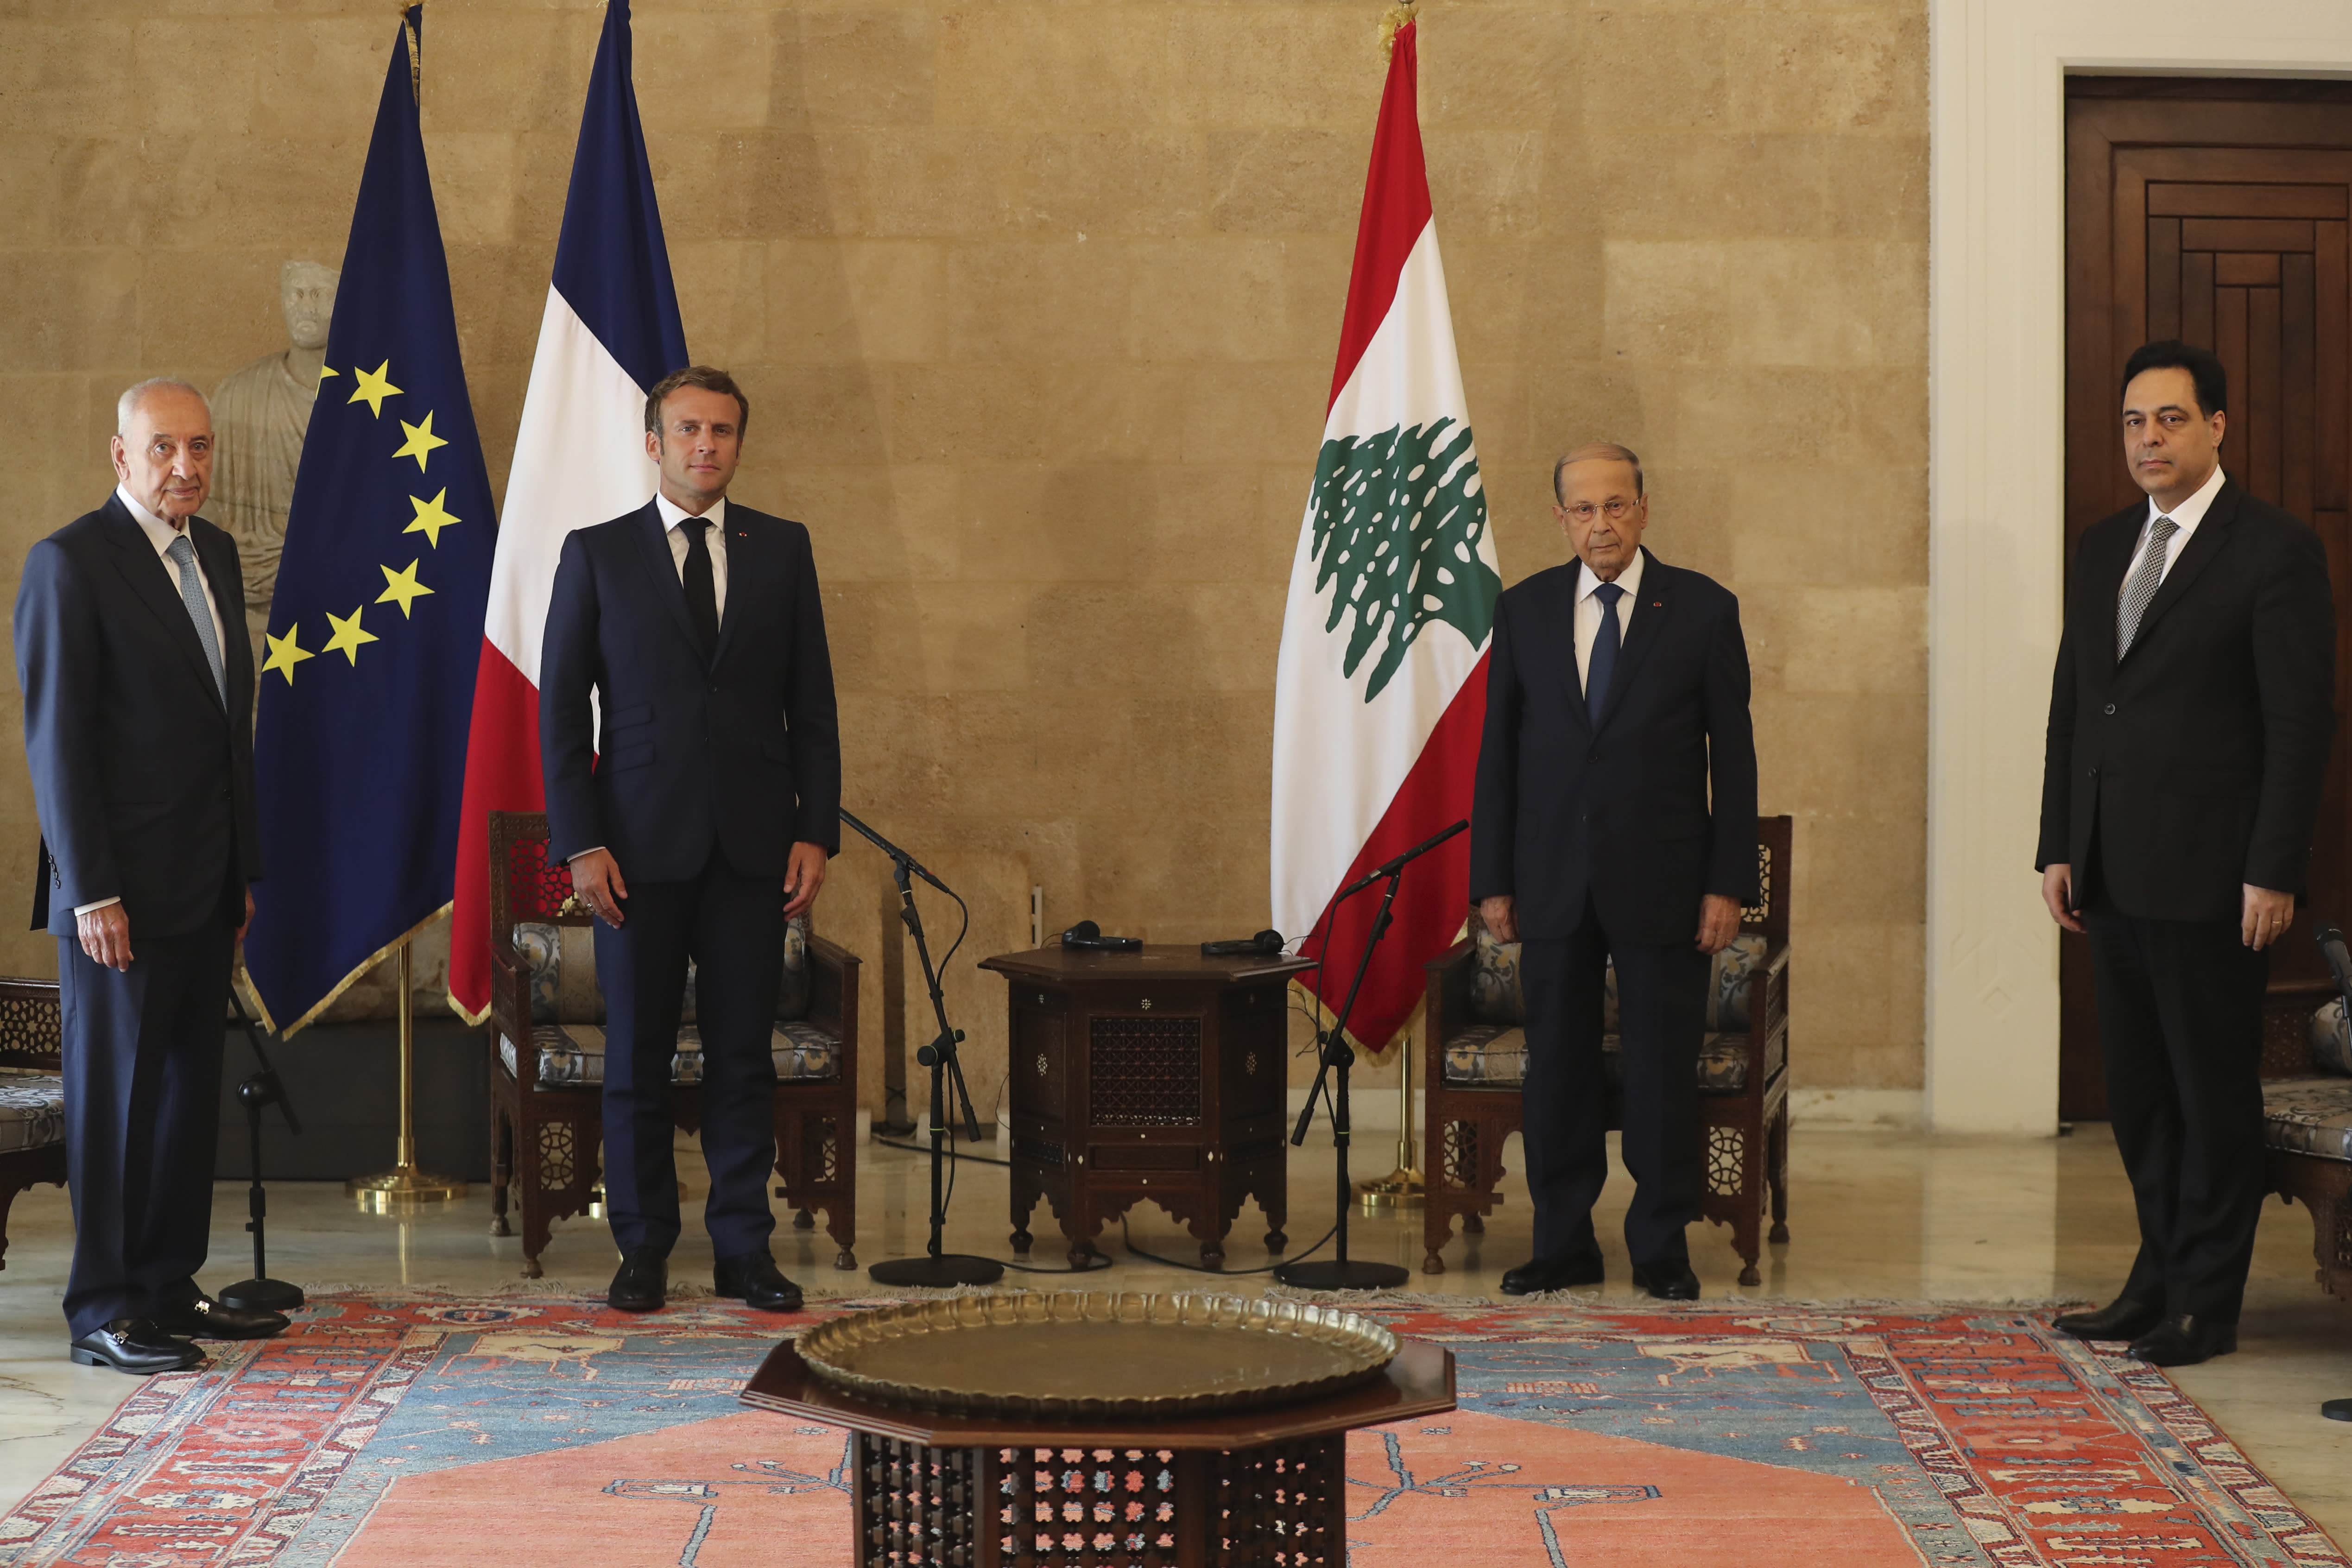 FILE - In this Aug.6, 2020 file photo, French President Emmanuel Macron, second left, and Lebanese President Michel Aoun, second right, meet at Beirut–Rafic Hariri International Airport, in Lebanon. In the wake of Beirut's massive port explosion, Macron has taken a tough line, setting deadlines for Lebanon's politicians to carry out reforms. His hands-on approach has angered some in Lebanon and brought praise from others. (AP Photo/Thibault Camus, Pool, File)